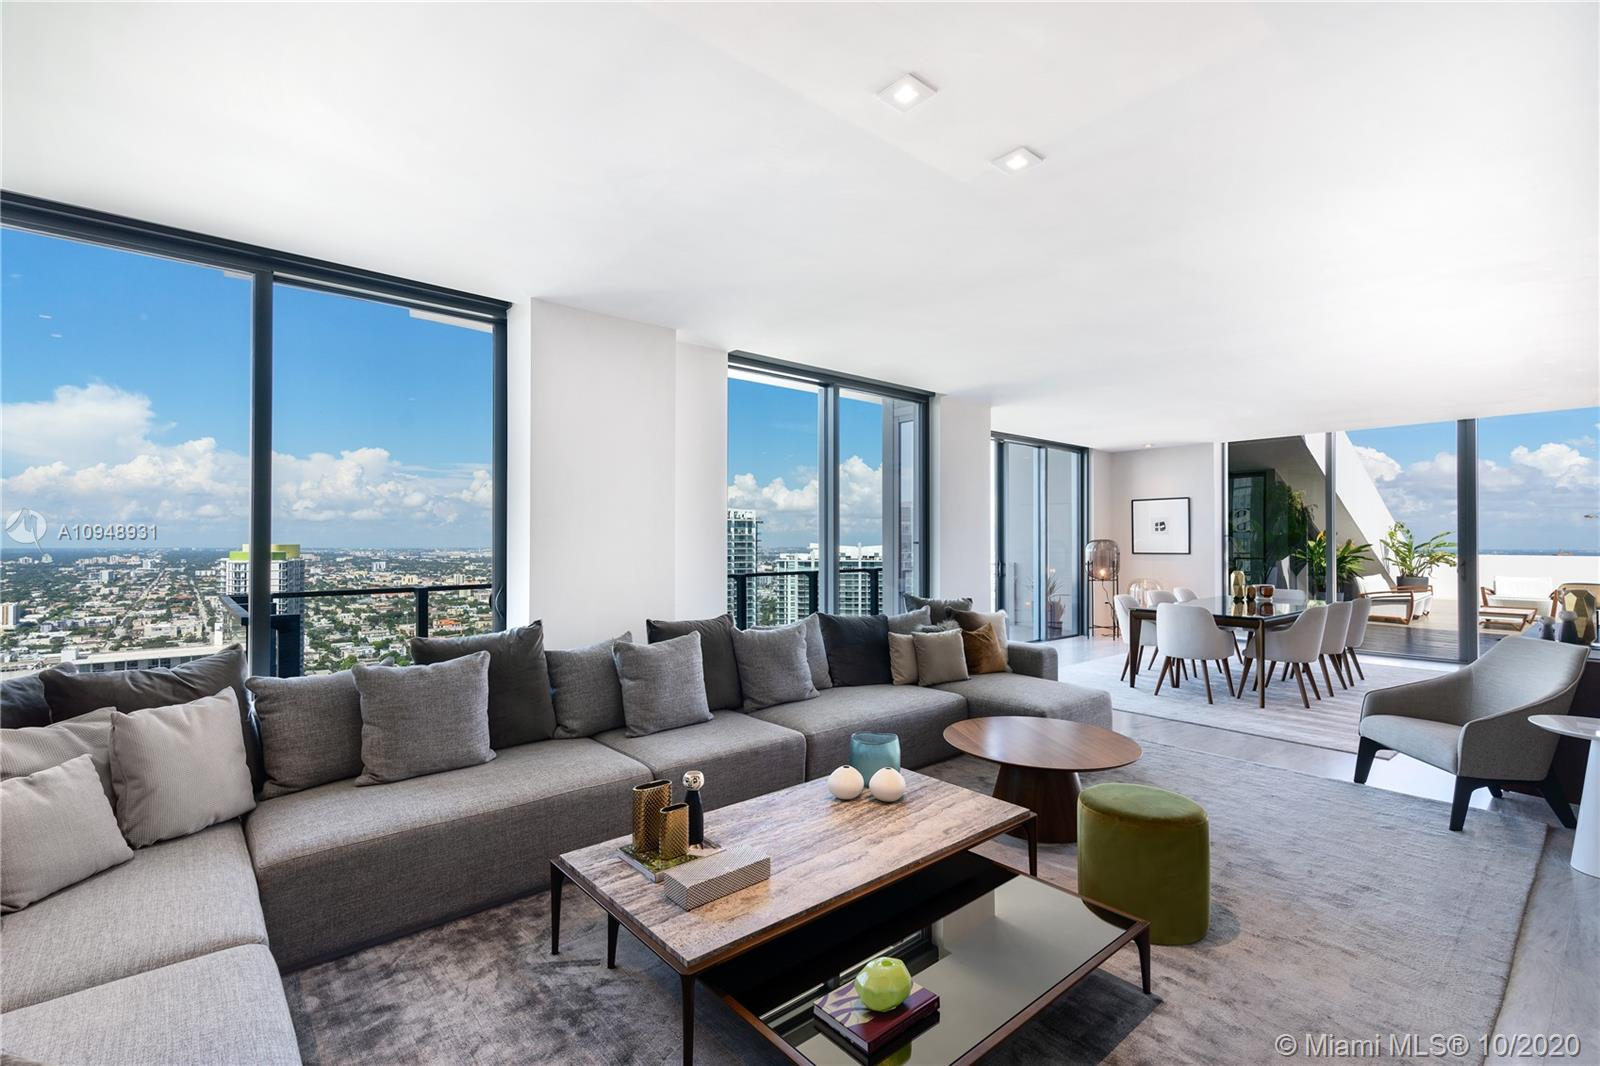 68 SE 6th St, Unit #PH4204 Luxury Real Estate